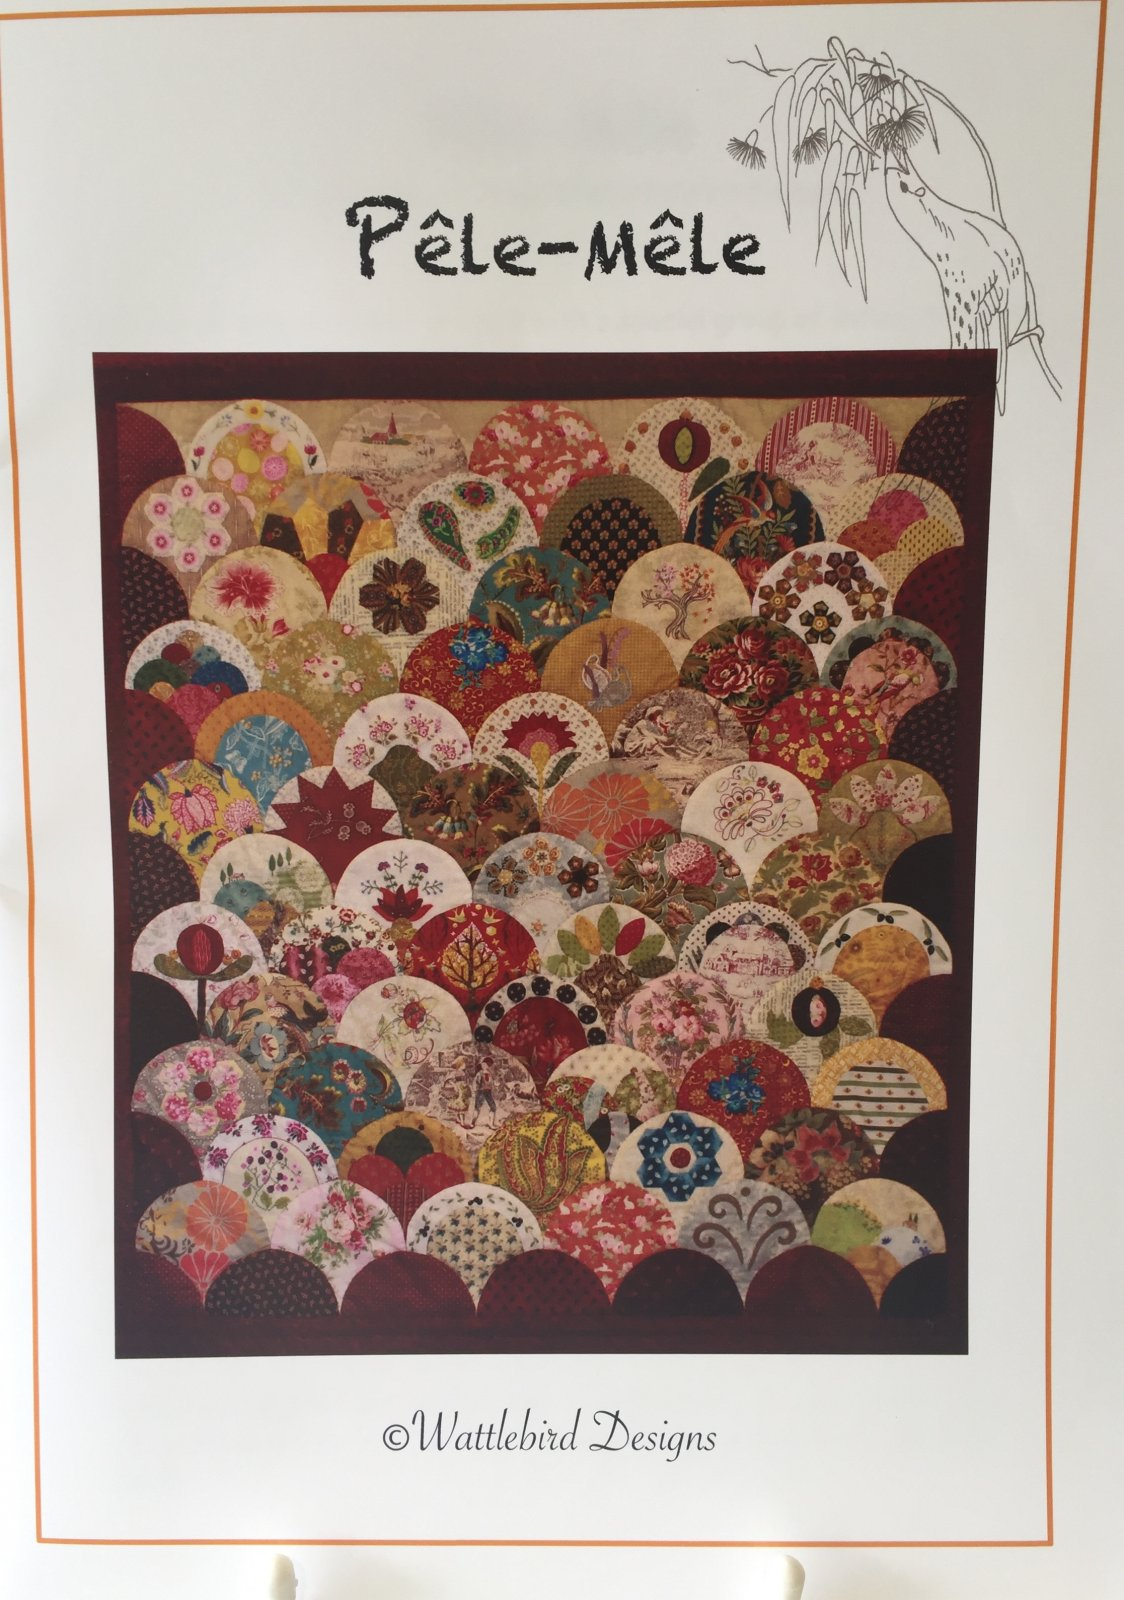 Veronique's Quilt Designs: Pele Mele - Pattern Only